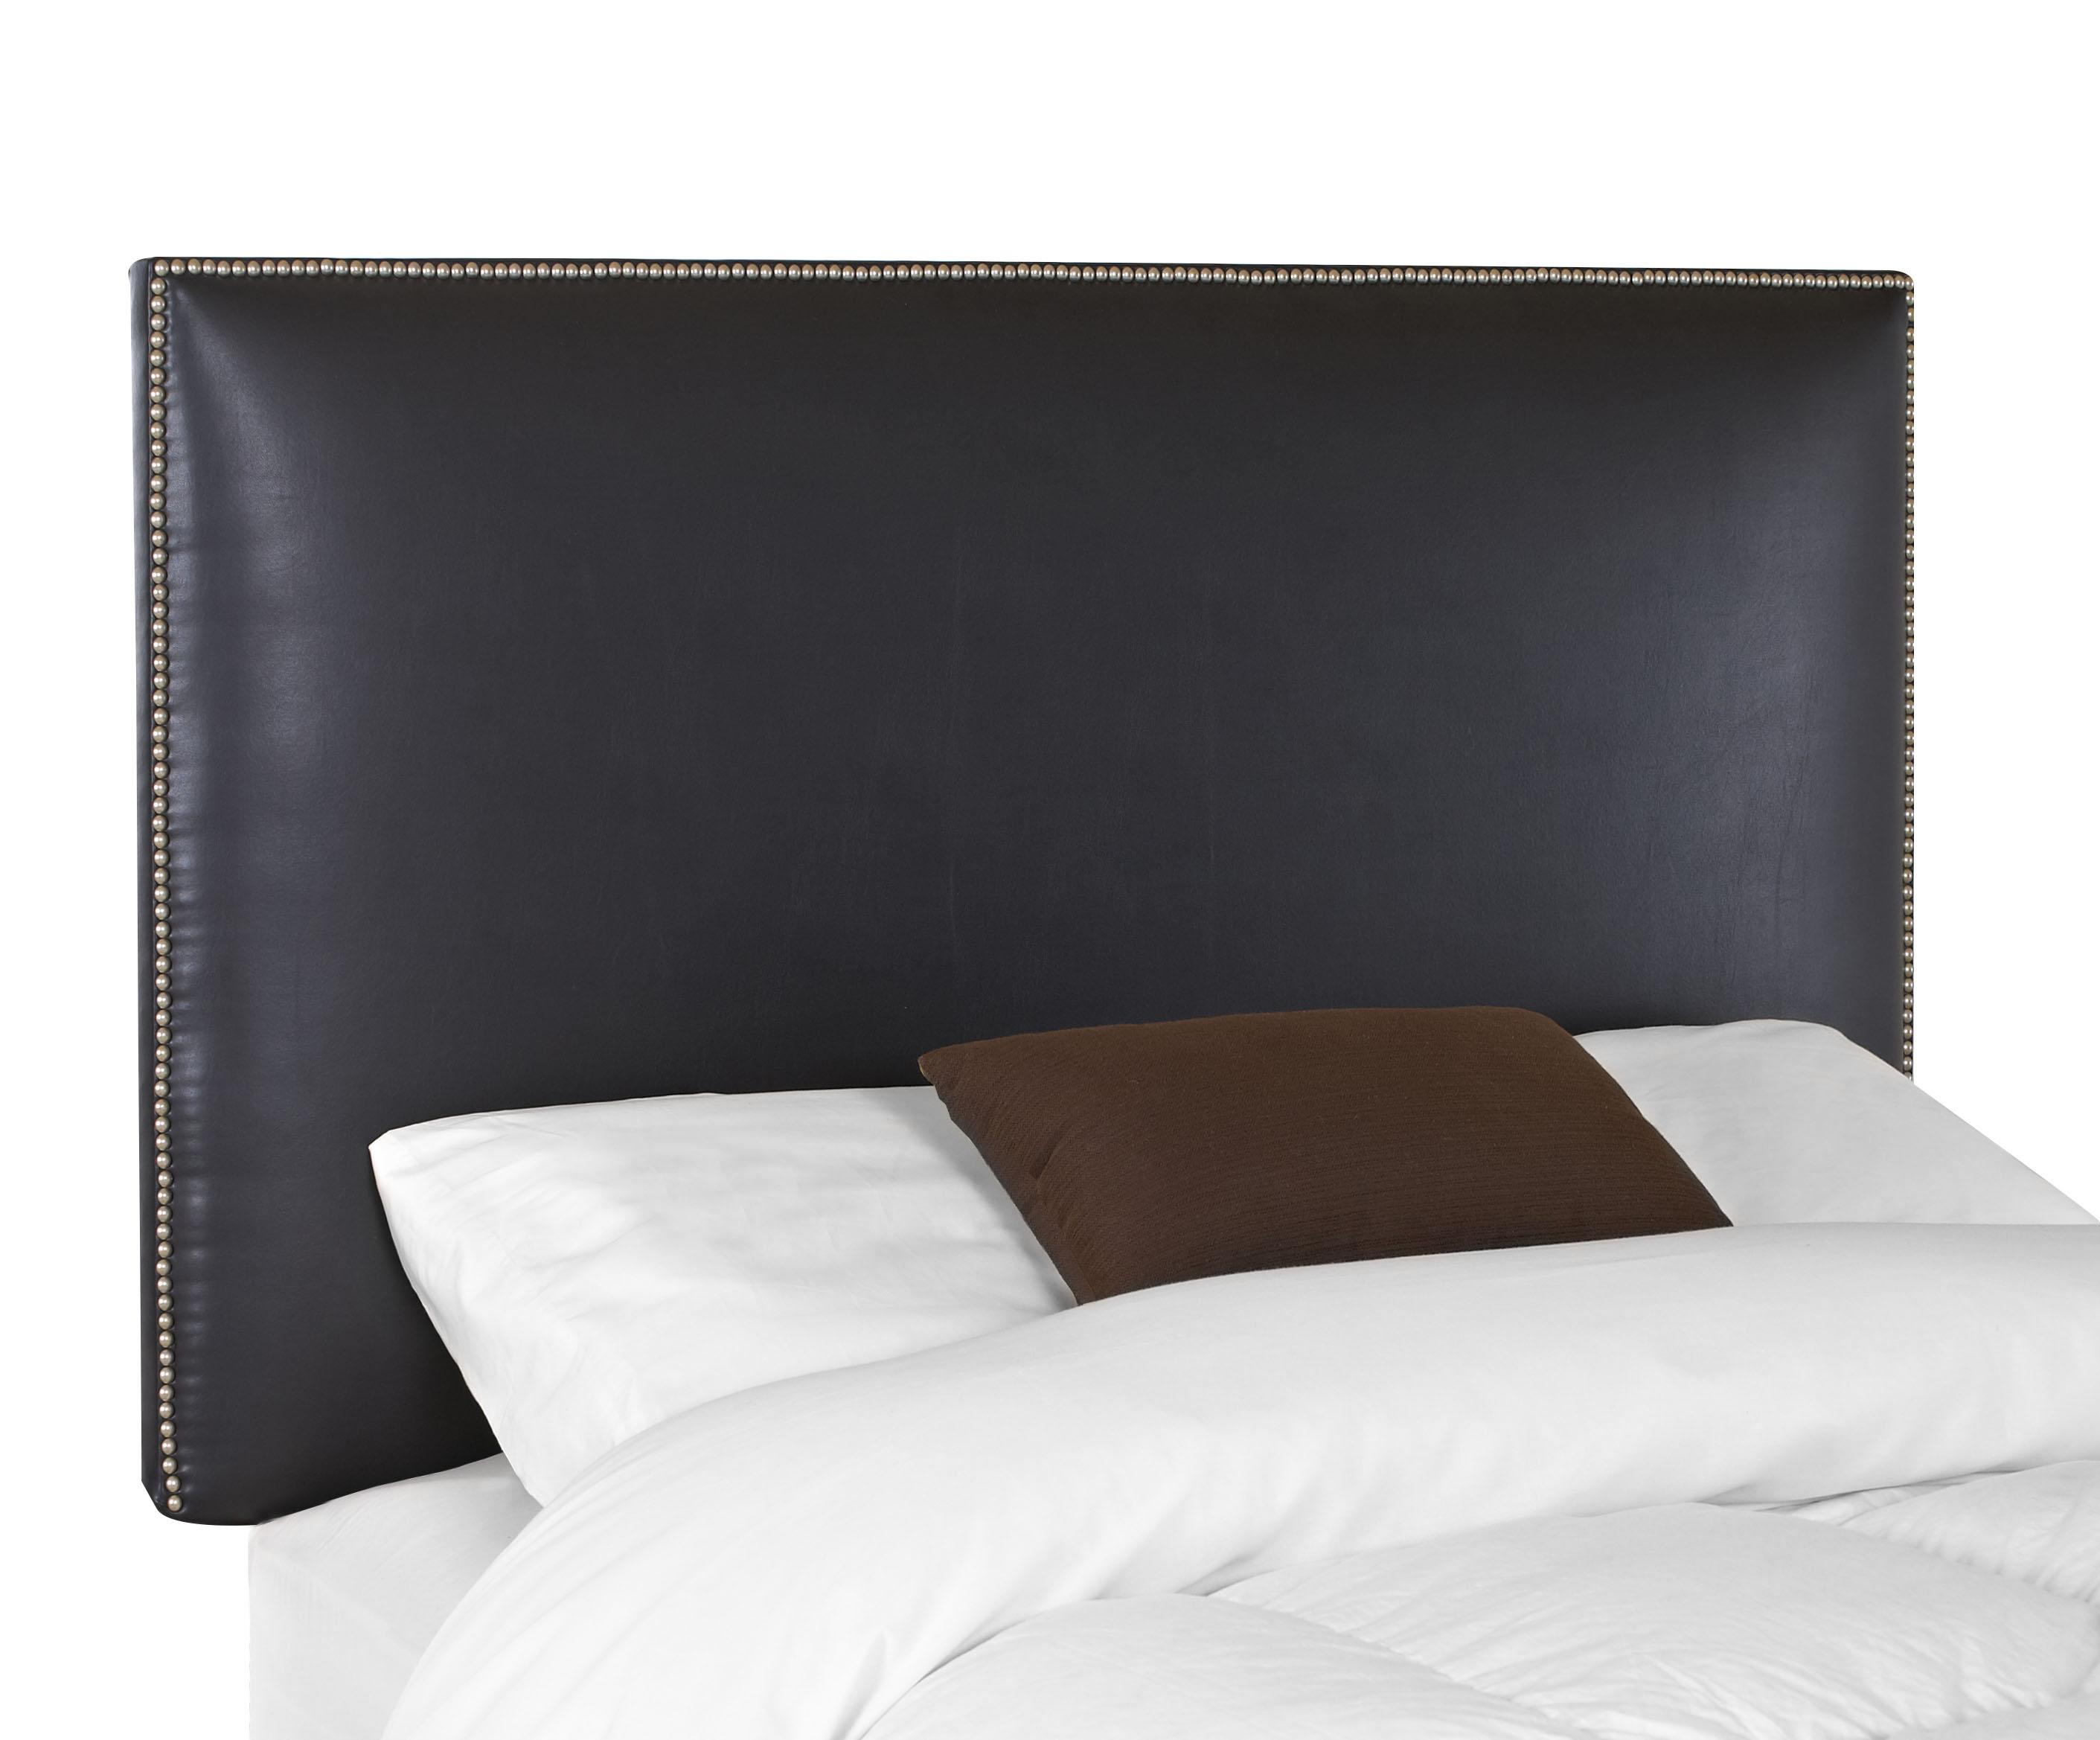 Klaussner Upholstered Beds And Headboards 24710 029 Hdbrd Glade Twin Upholstered Headboard With Nail Head Trim Catalog Outlet Headboards